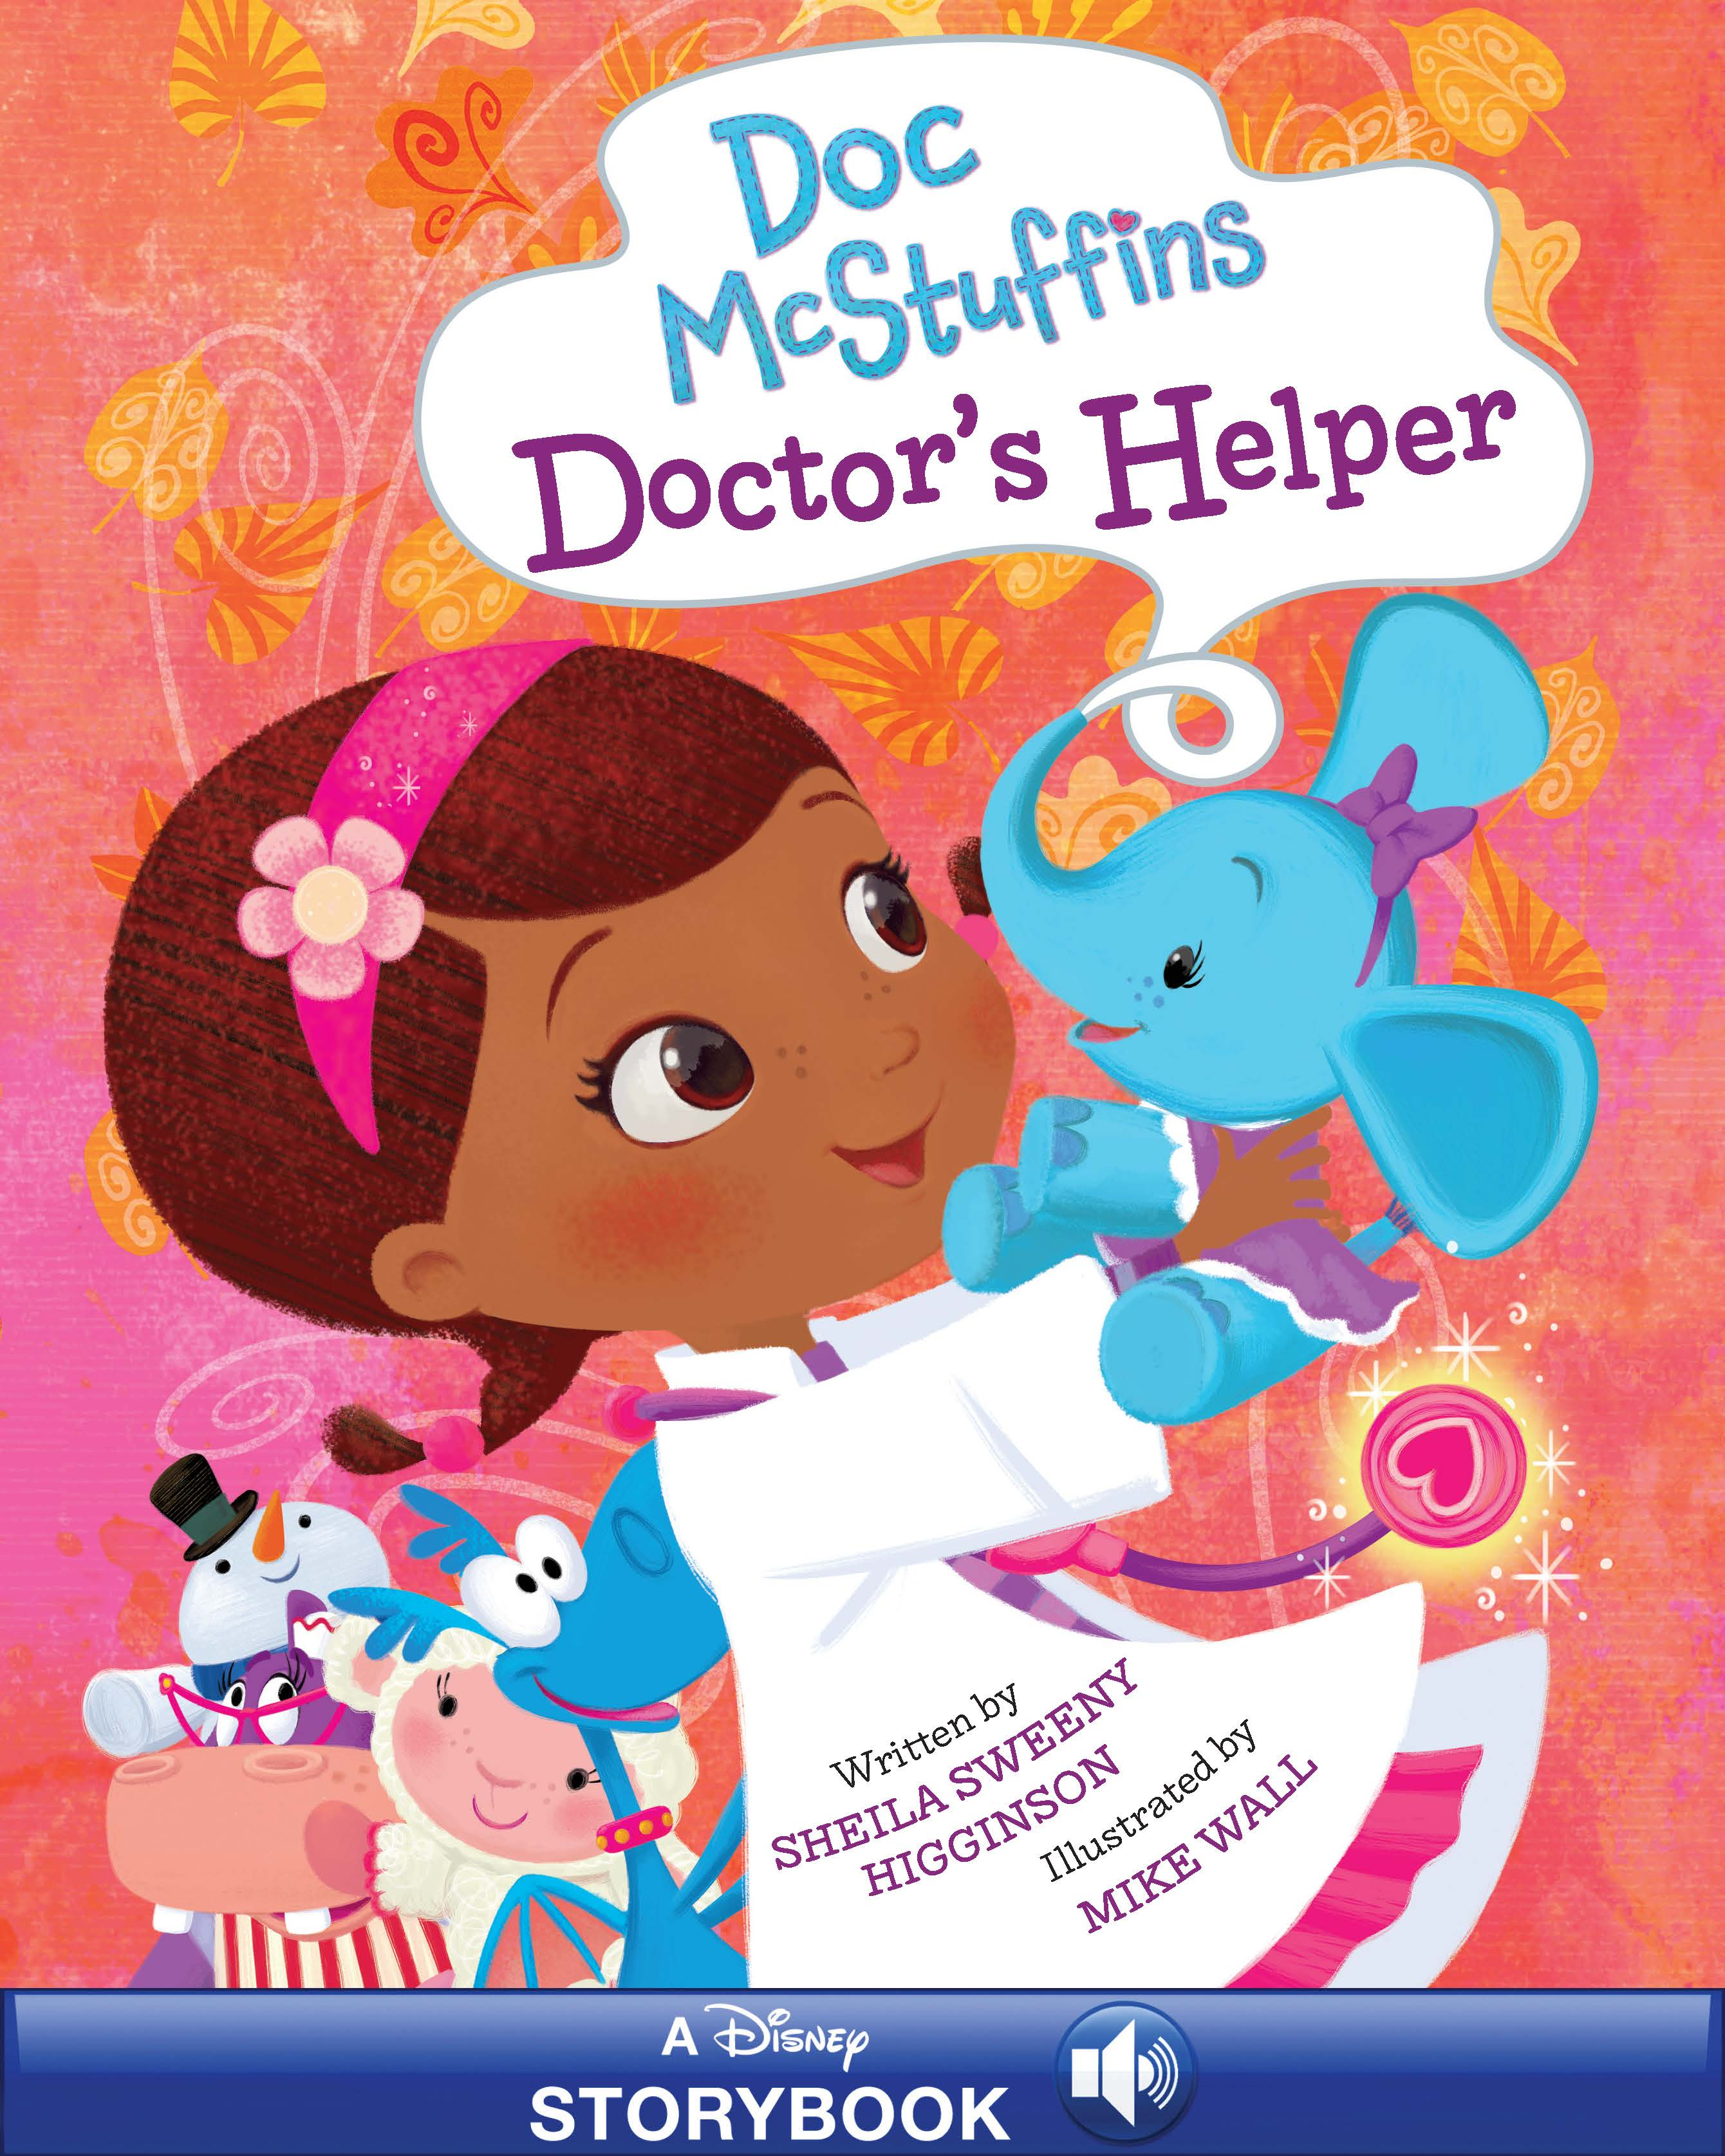 Doc McStuffins: Doctor's Helper